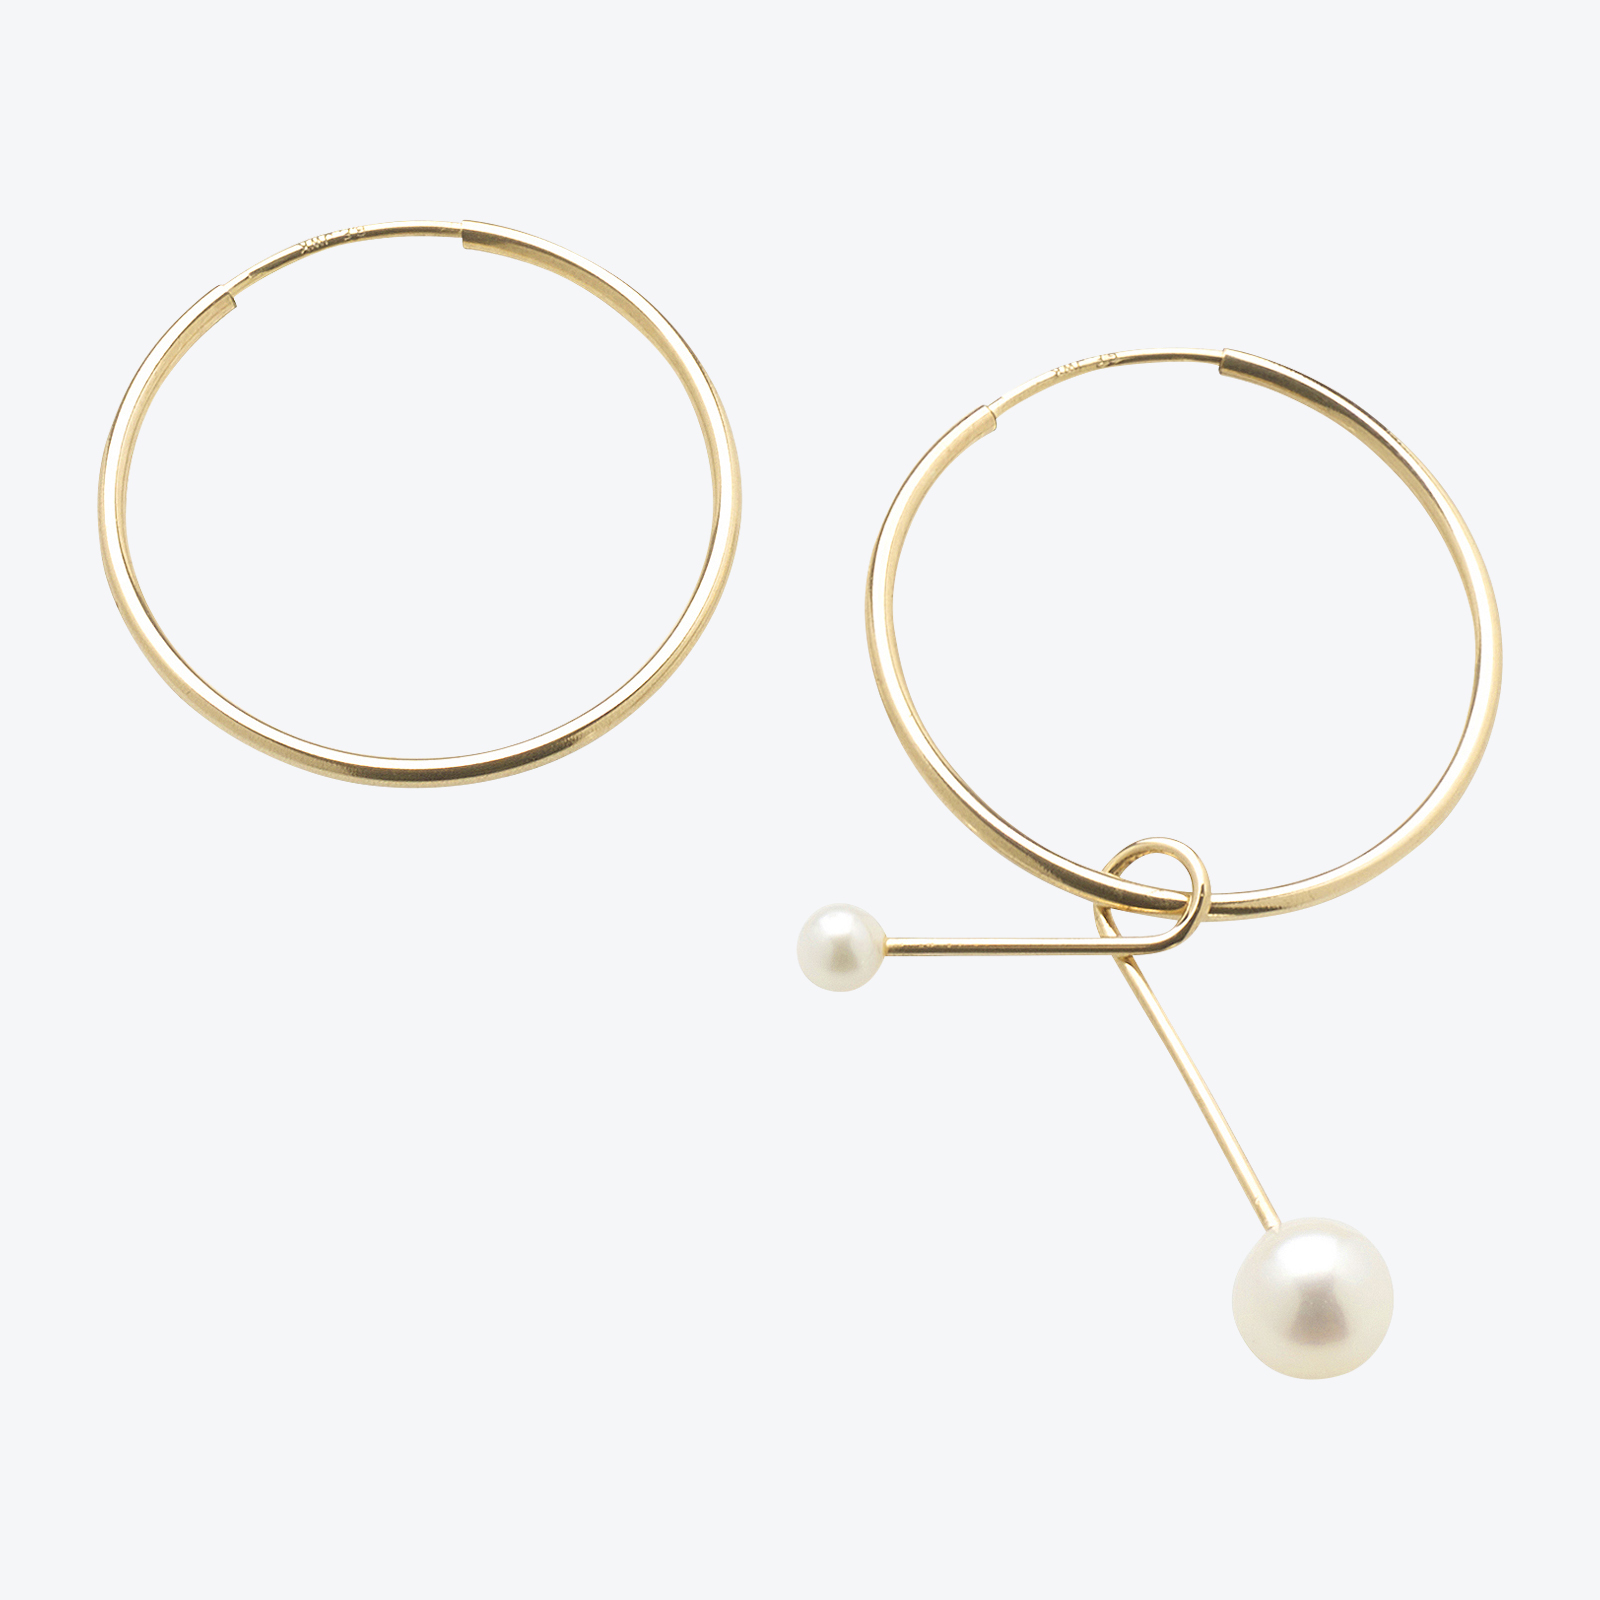 Twirl Hoops In Gold Filled With Freshwater Pearls By Pip Stent.jpg